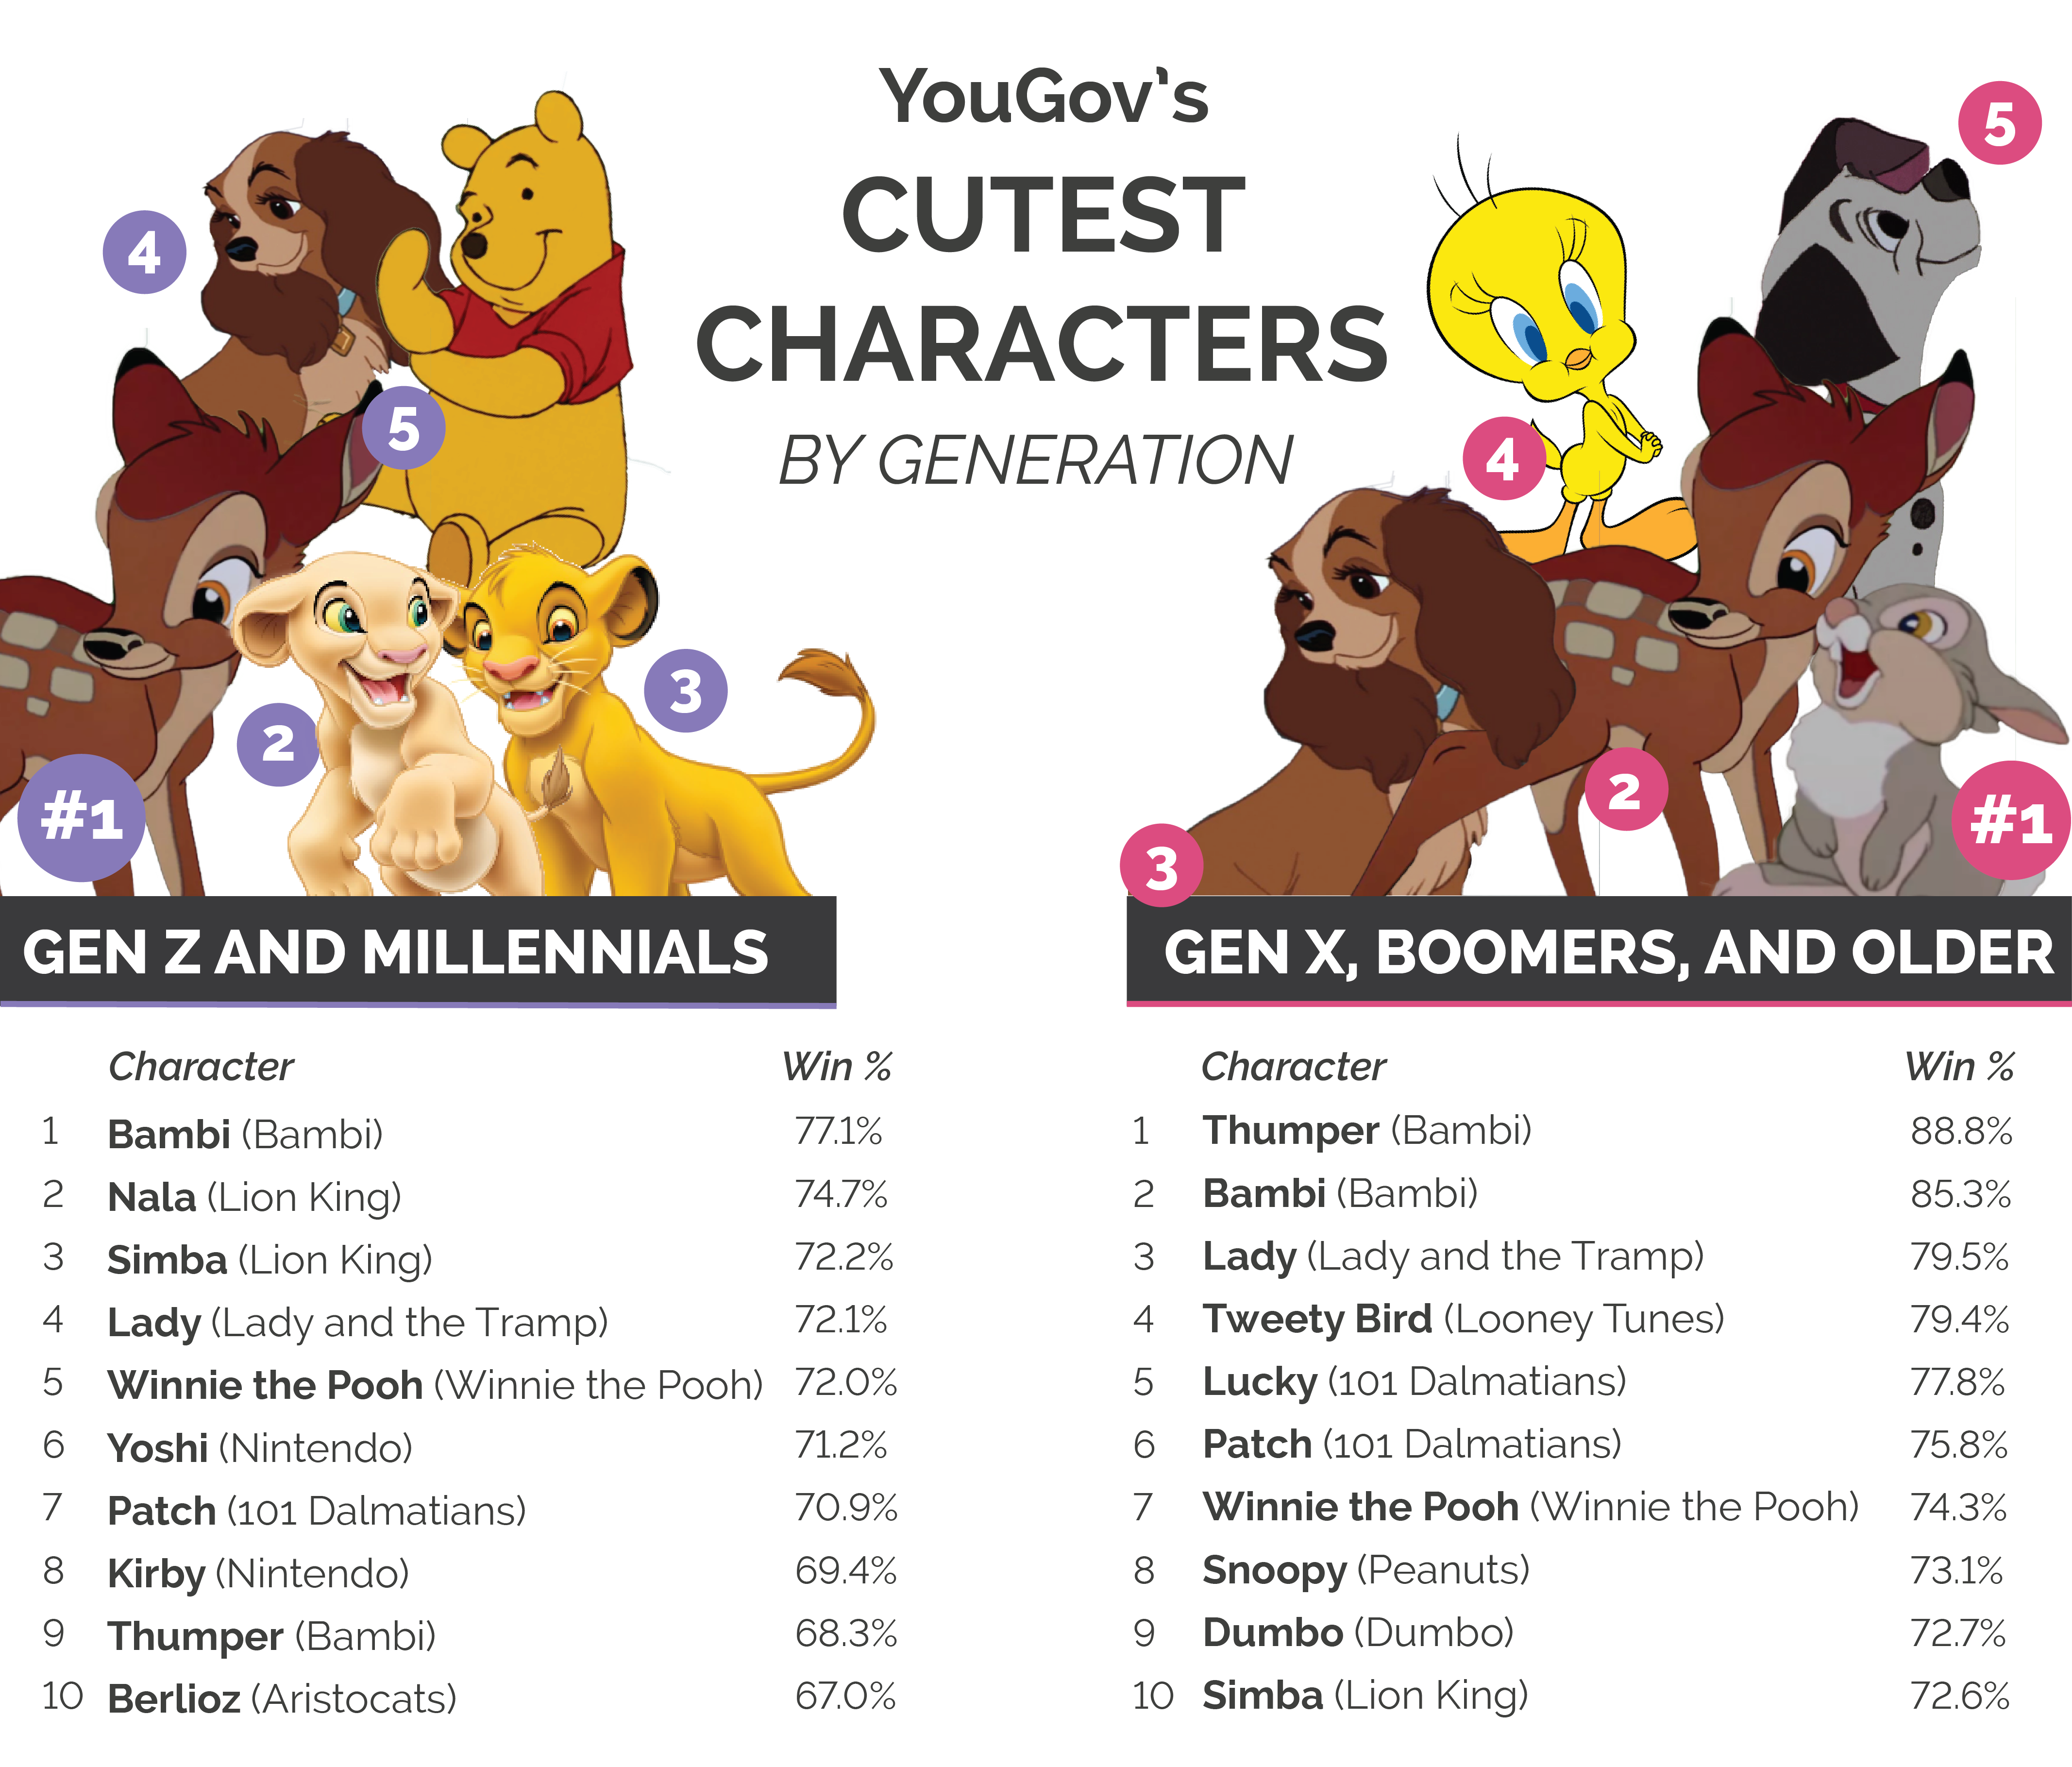 YouGov's cutest characters by generation